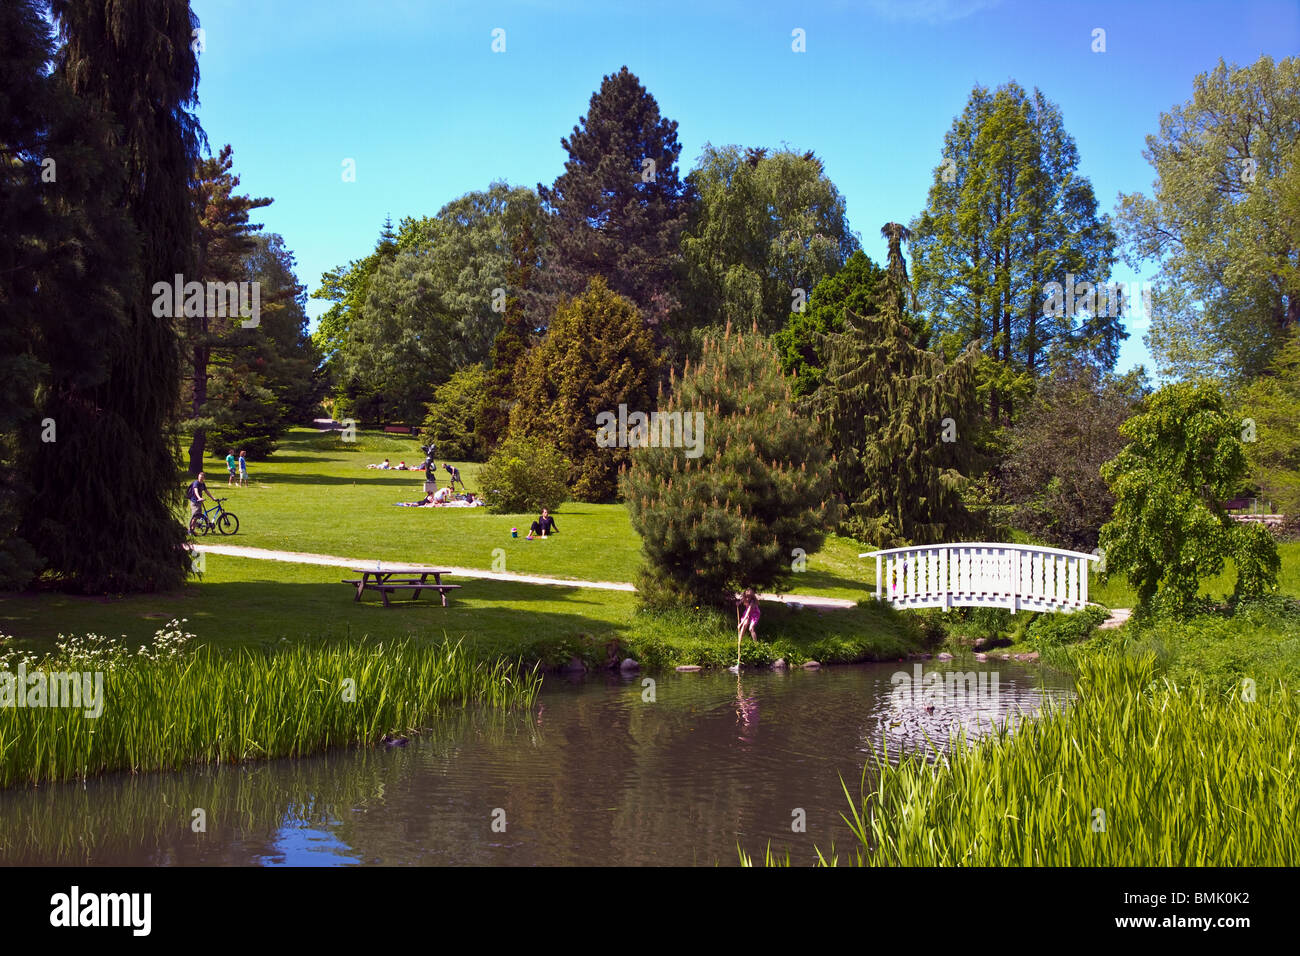 Children fishing near a small walkway in a lake in the Tourist attraction The Botanical Garden 'The Old Town' - Stock Image